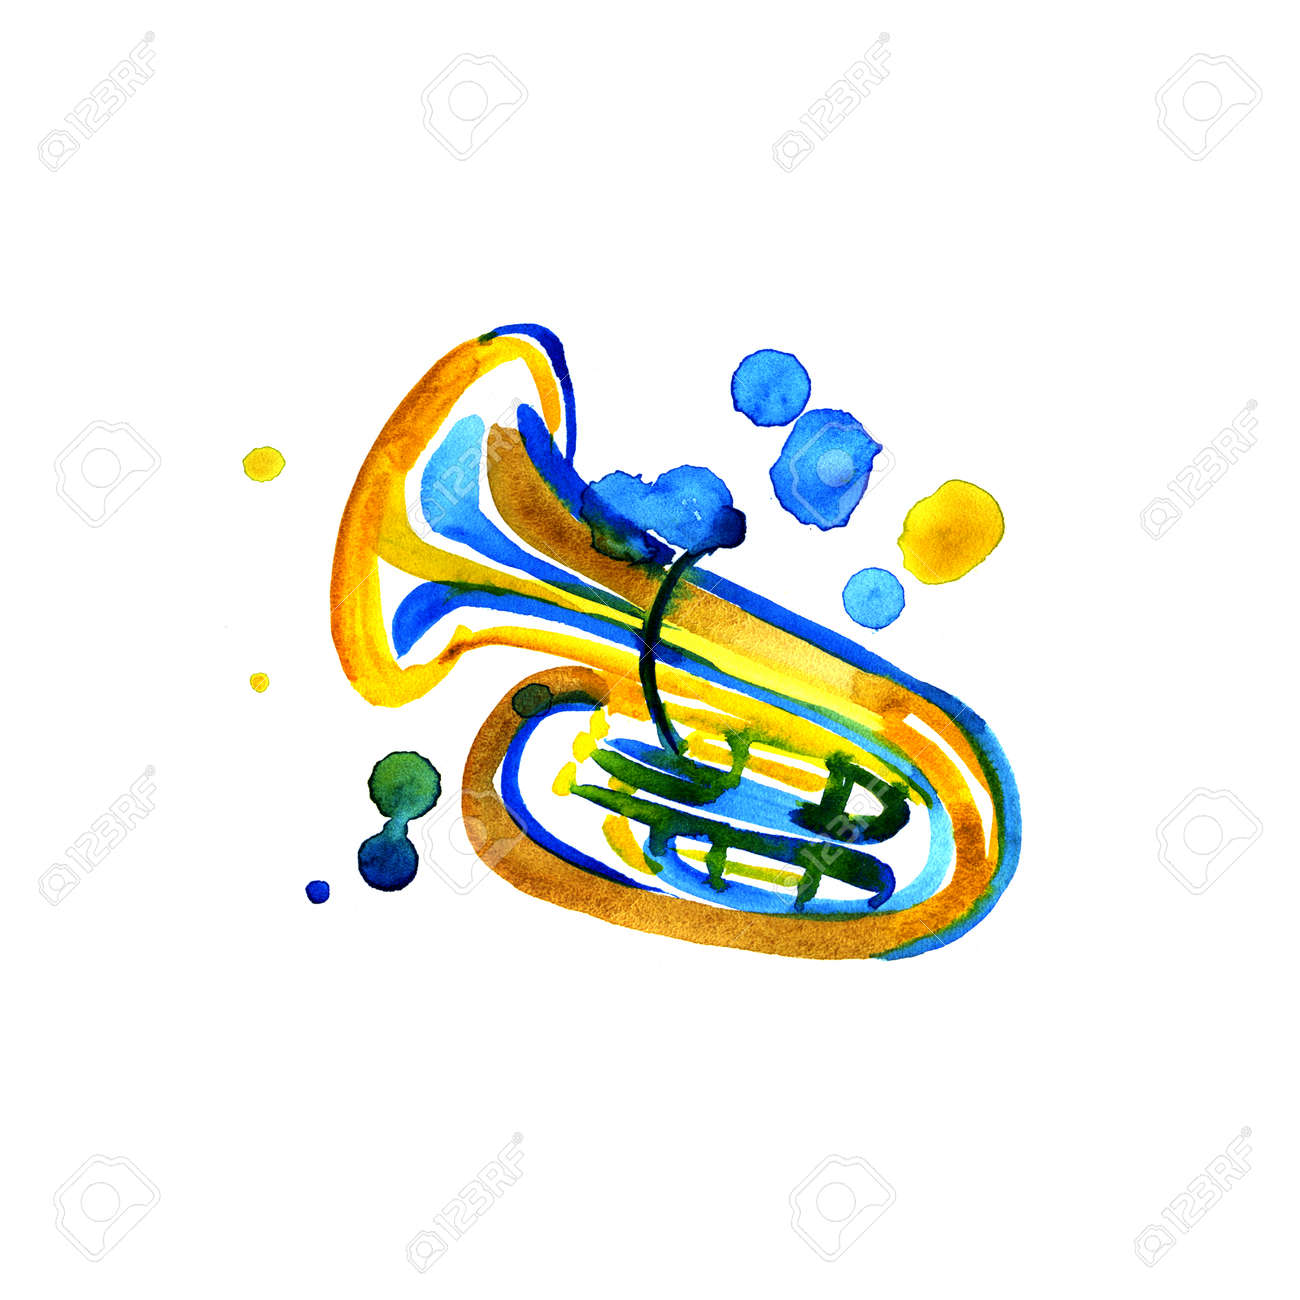 hight resolution of stock photo watercolor copper brass band tuba on white background